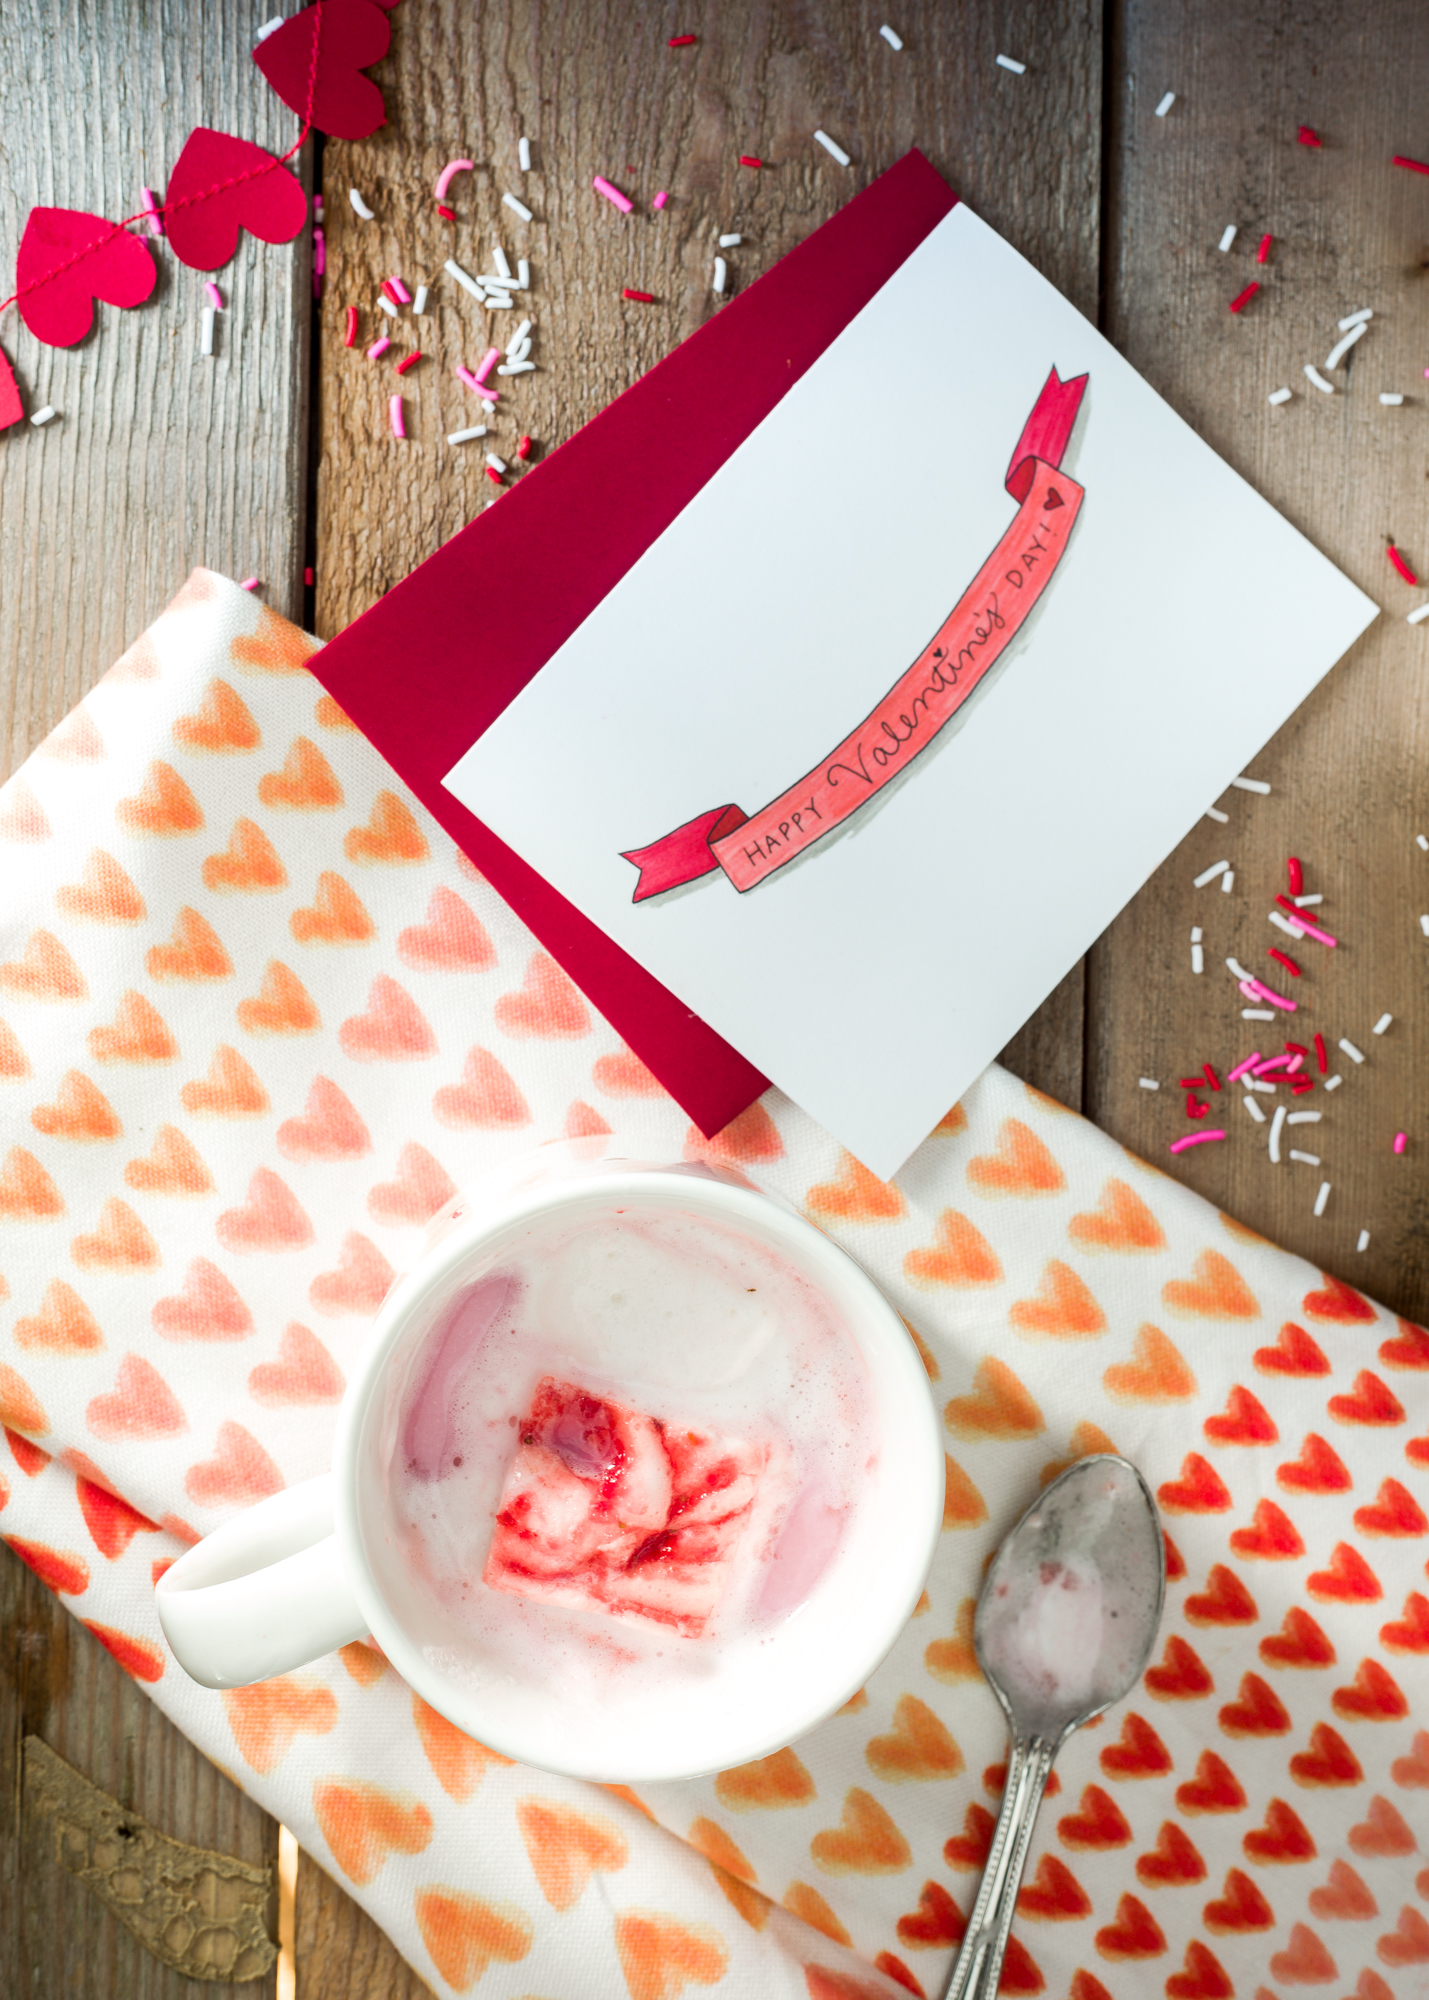 Strawberry Swirl Marshmallow from  Luv Cooks ,  Happy Valentine's Day card  from the  TLK Shop ,  Mug  and linen from  West Elm ,  Pink Hot Chocolate  from Sur La Table.